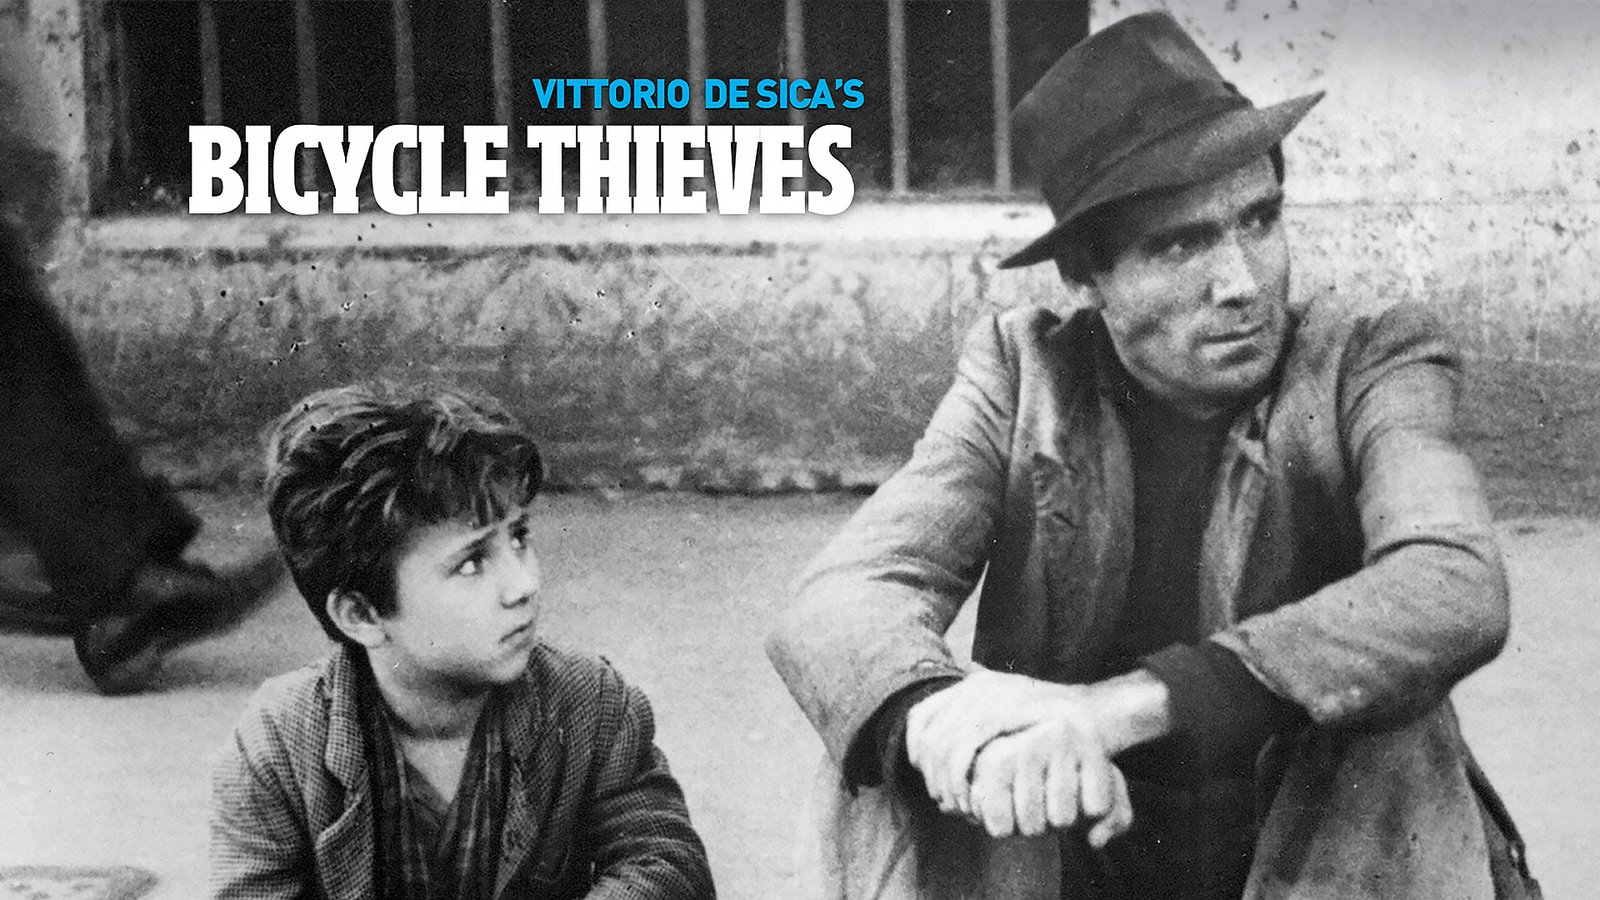 The Bicycle Thief